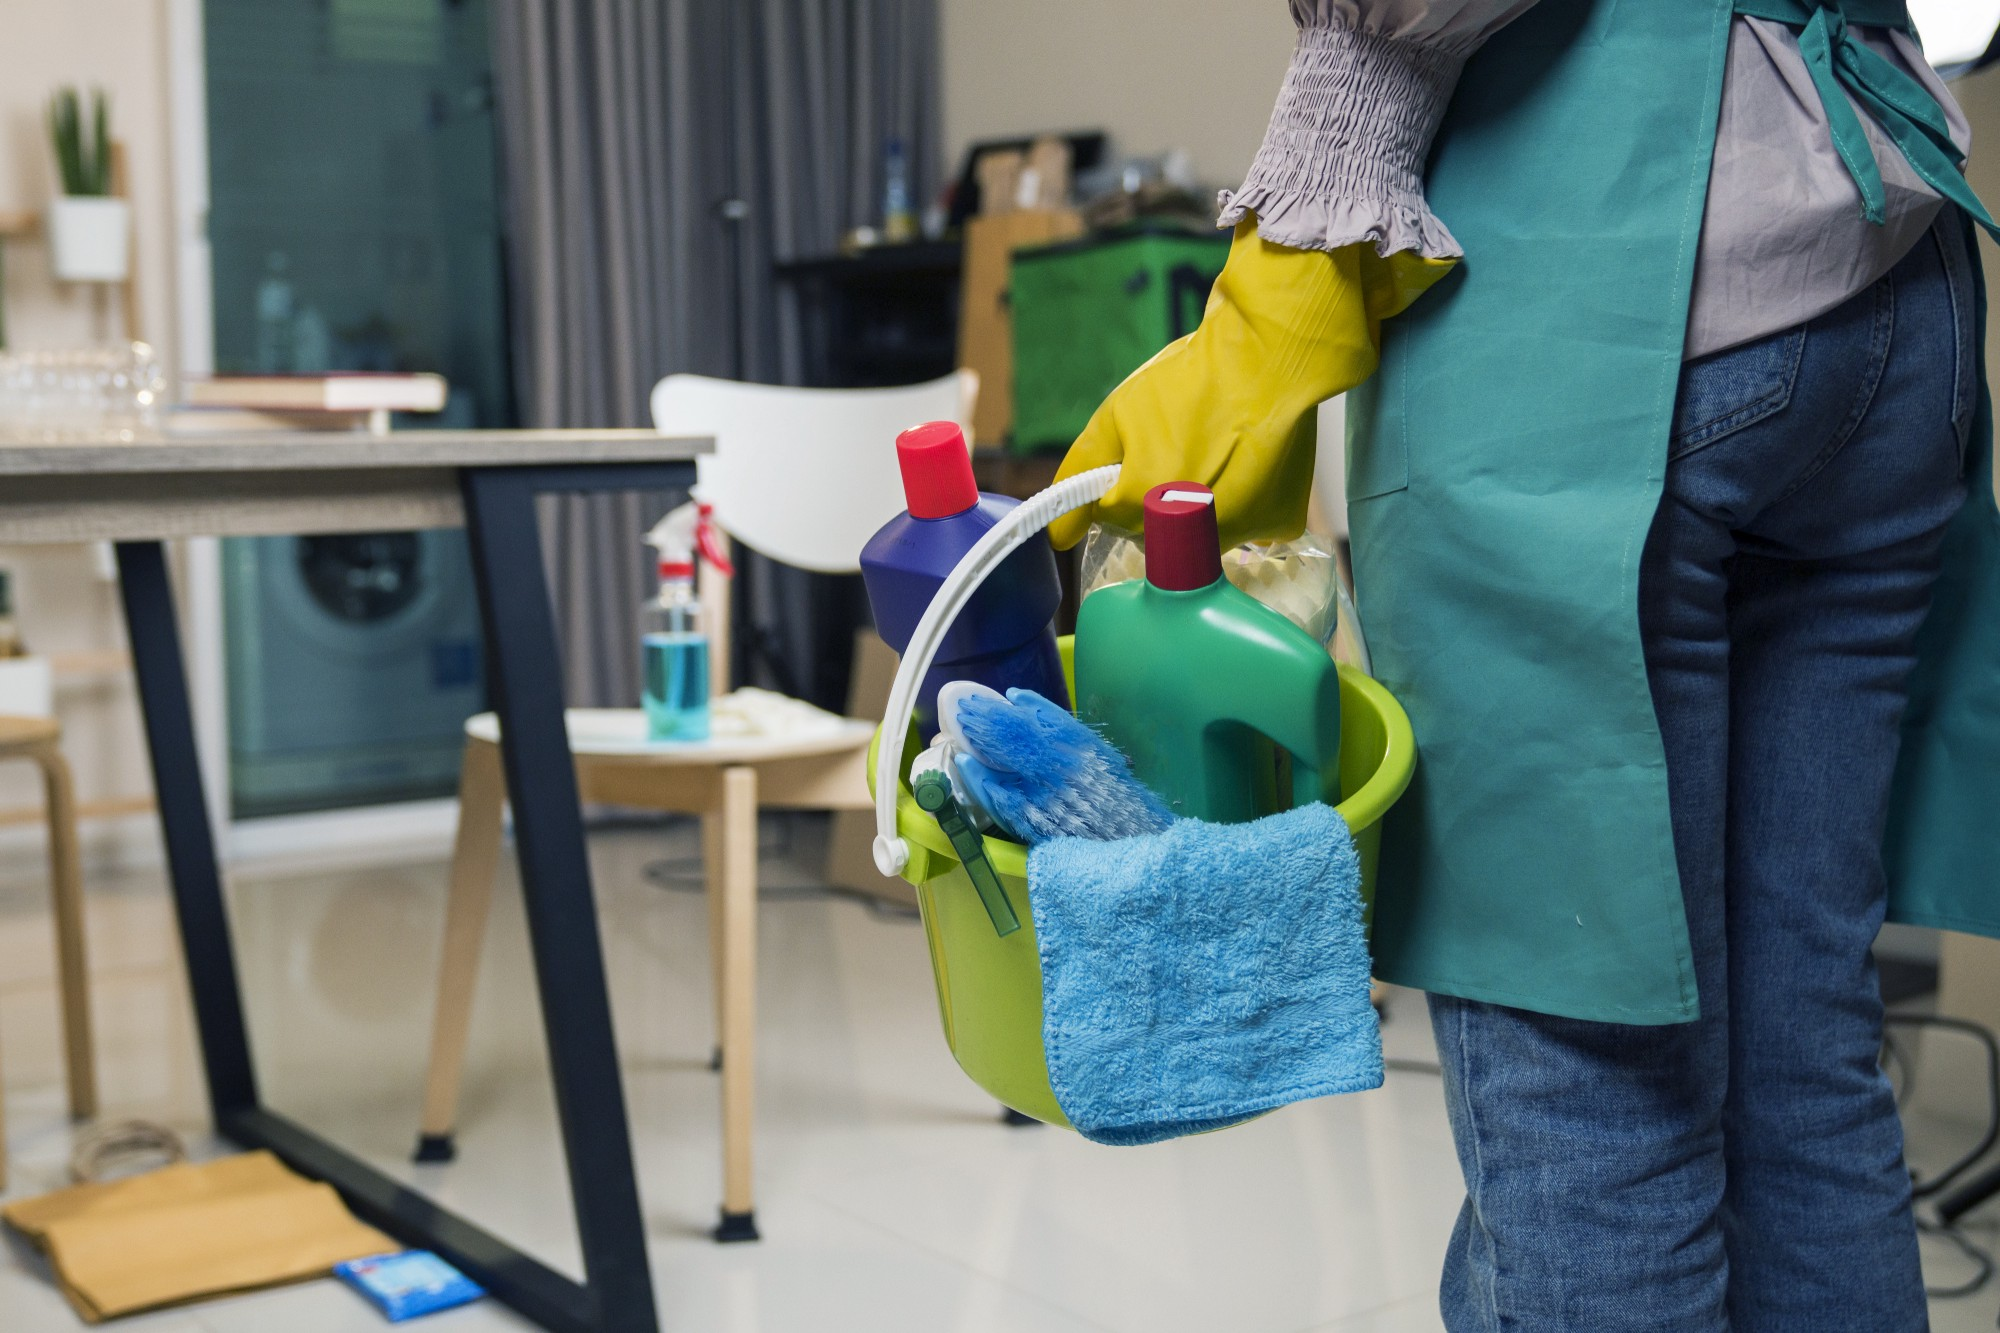 A waist-down shot of a maid, seen from behind, holding a bucket of cleaning products in a small room.